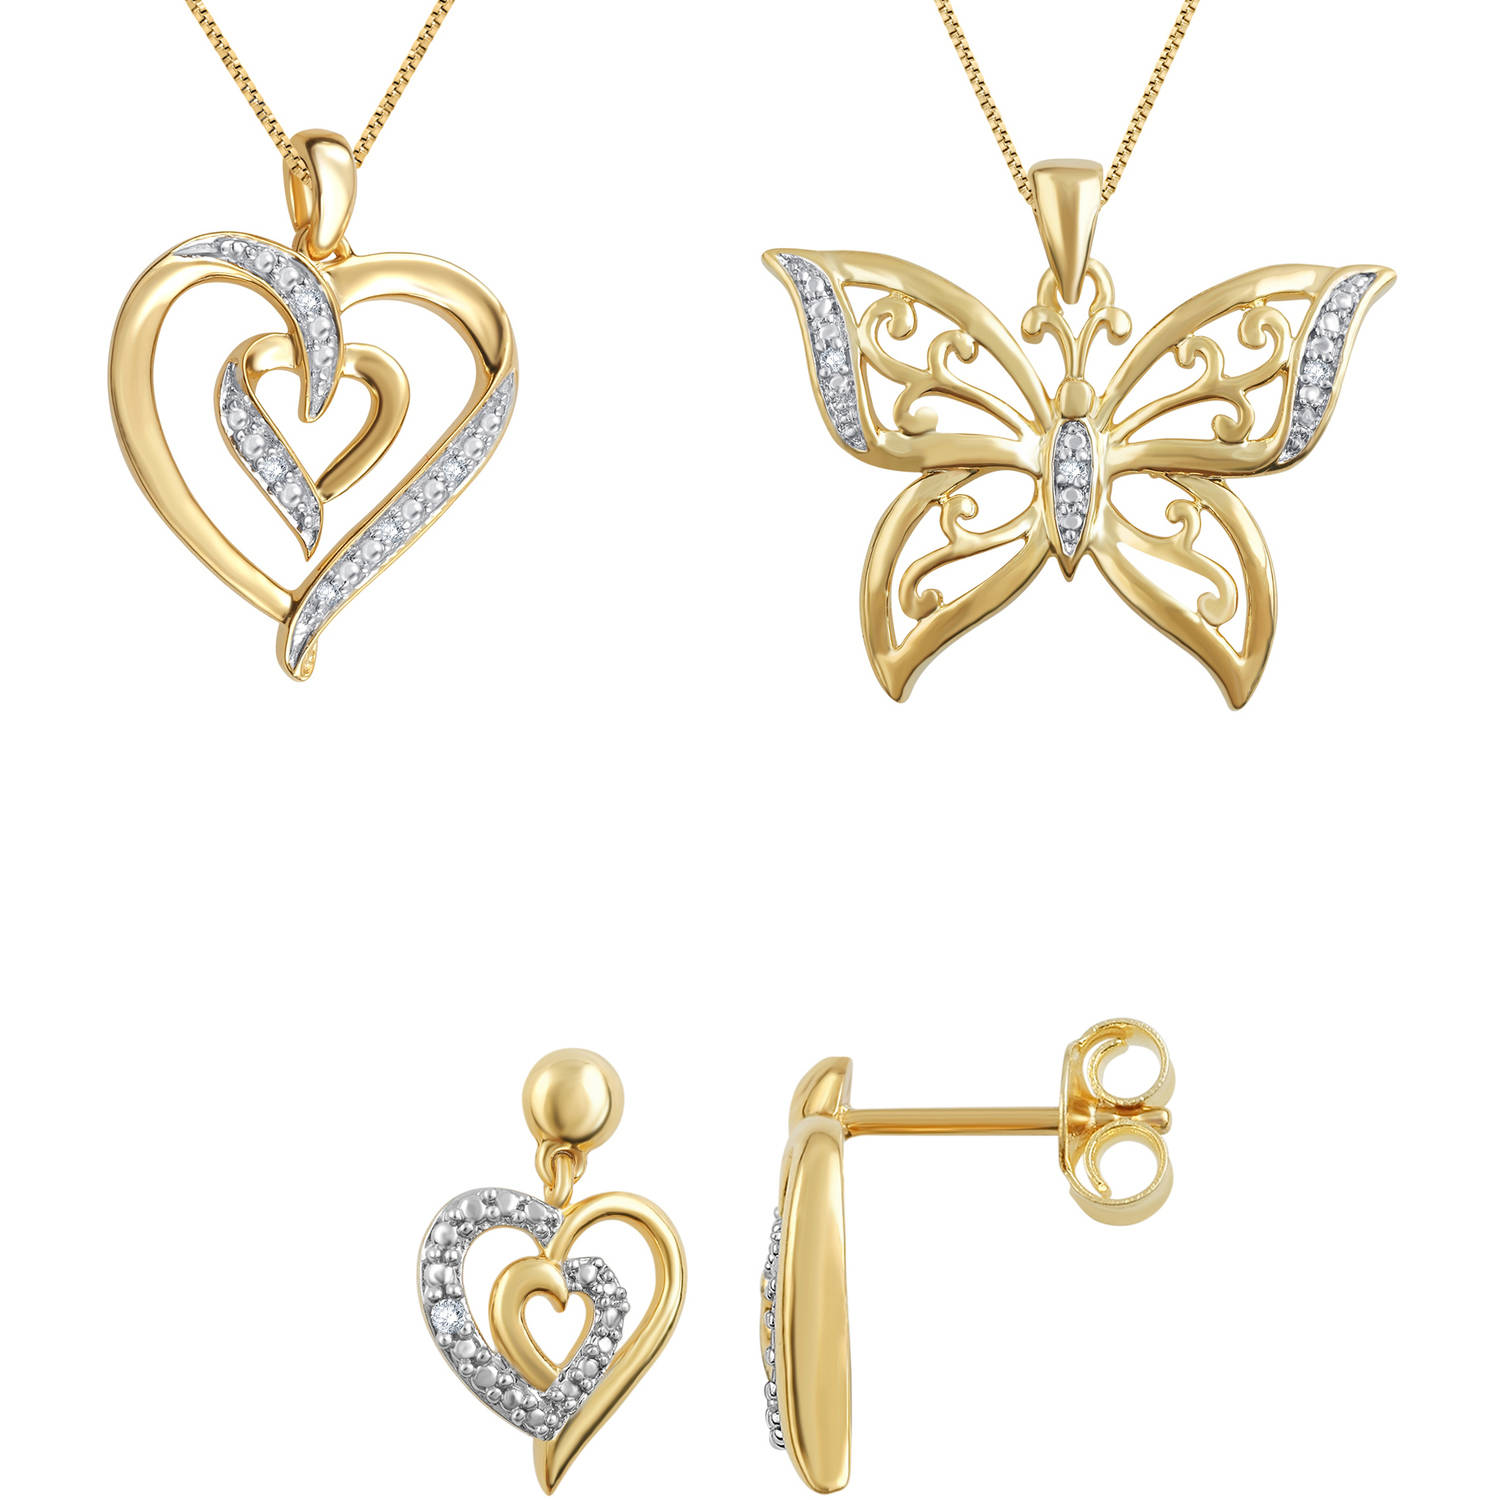 18kt Gold-Plated Brass Diamond Accent 3-Piece Fashion Jewelry Set with Heart Earrings, Heart Pendant and Butterfly Pendant